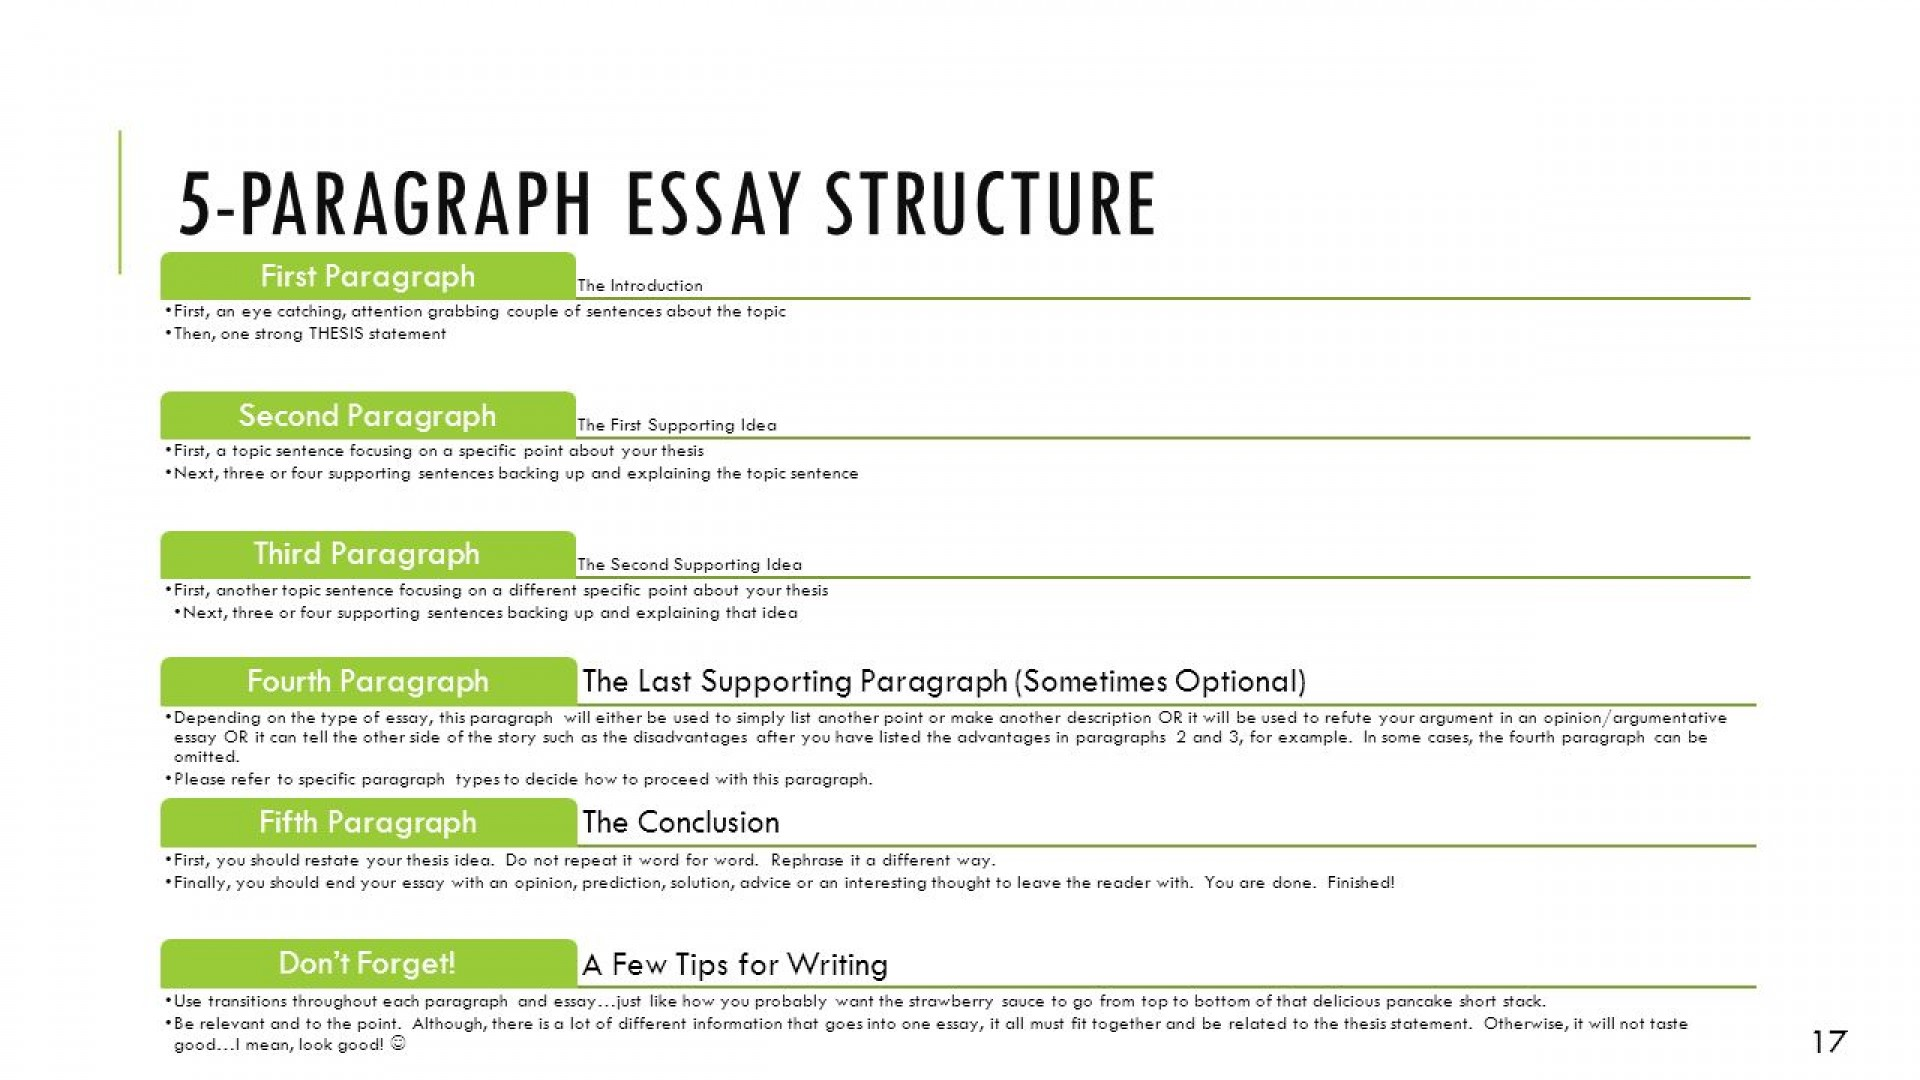 004 Introduction Paragraph Essay From To How They Are Good Opening Sentences For Essays Sl Examples First College Great Argumentative Example Sentence Of Frightening An Academic Writing The Draft 1920